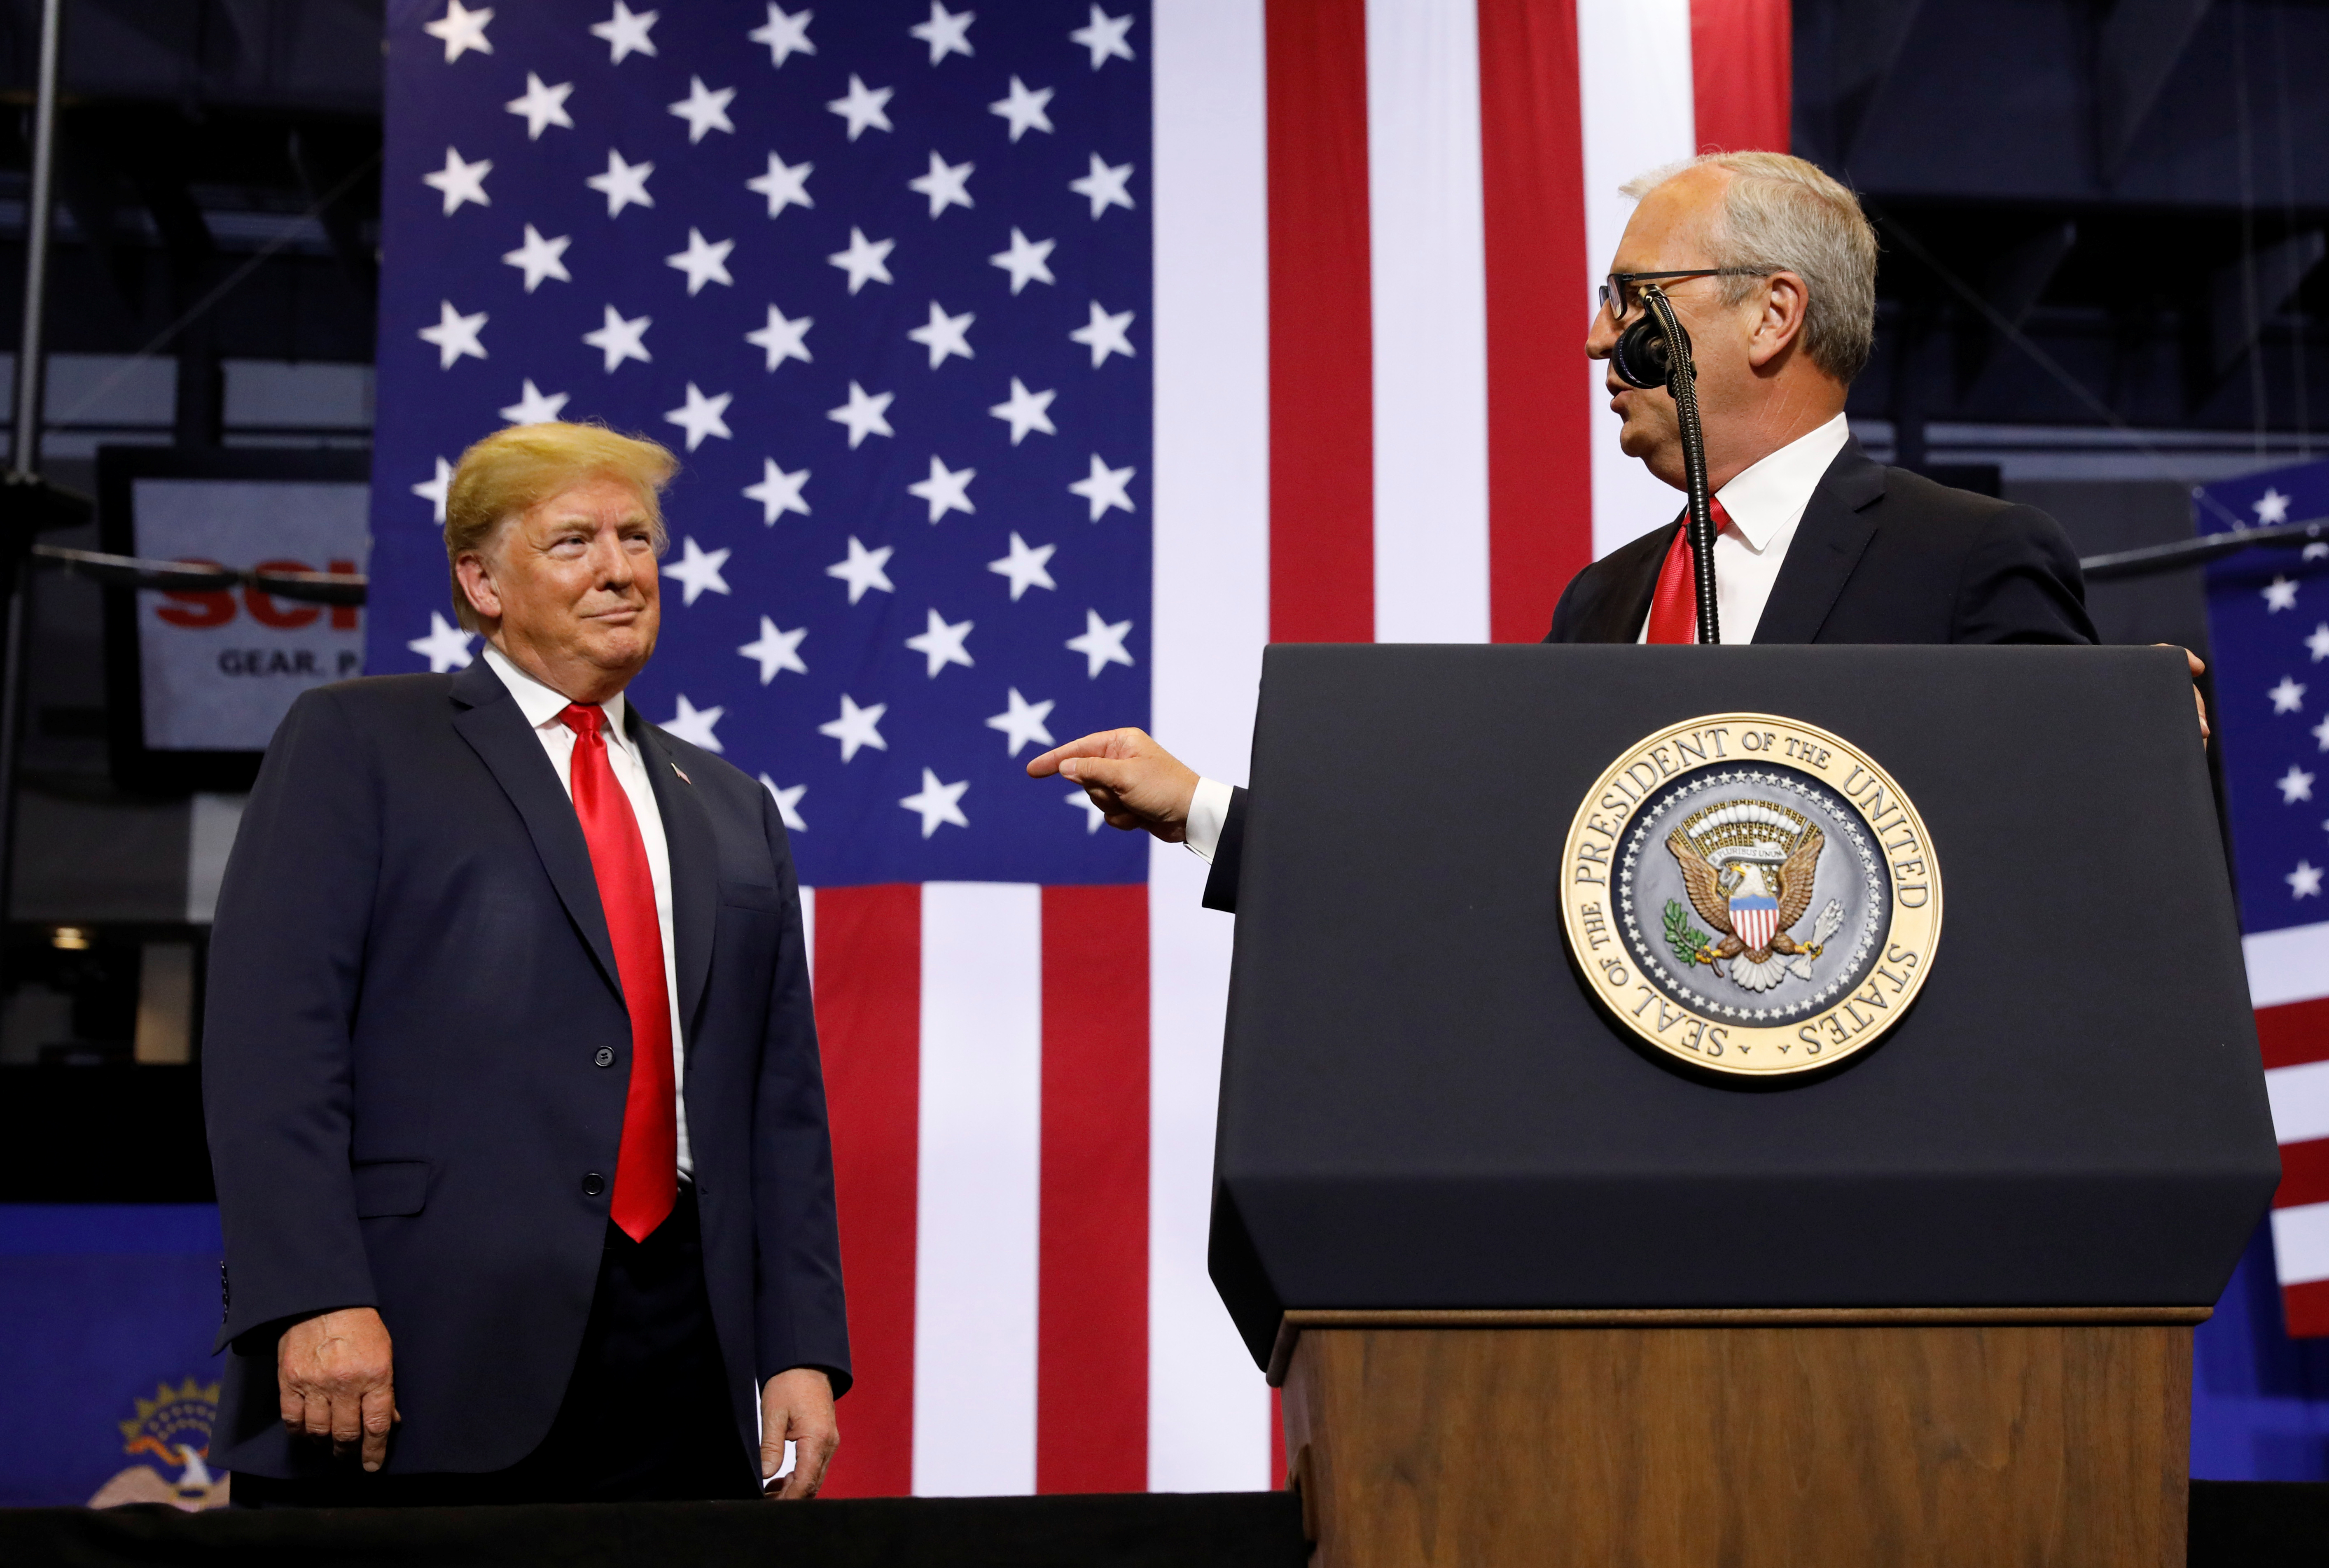 U.S. President Donald Trump listens at a rally in support of Rep. Kevin Cramer (R) in his run for Senate in Fargo, North Dakota, U.S., June 27, 2018. REUTERS/Kevin Lamarque